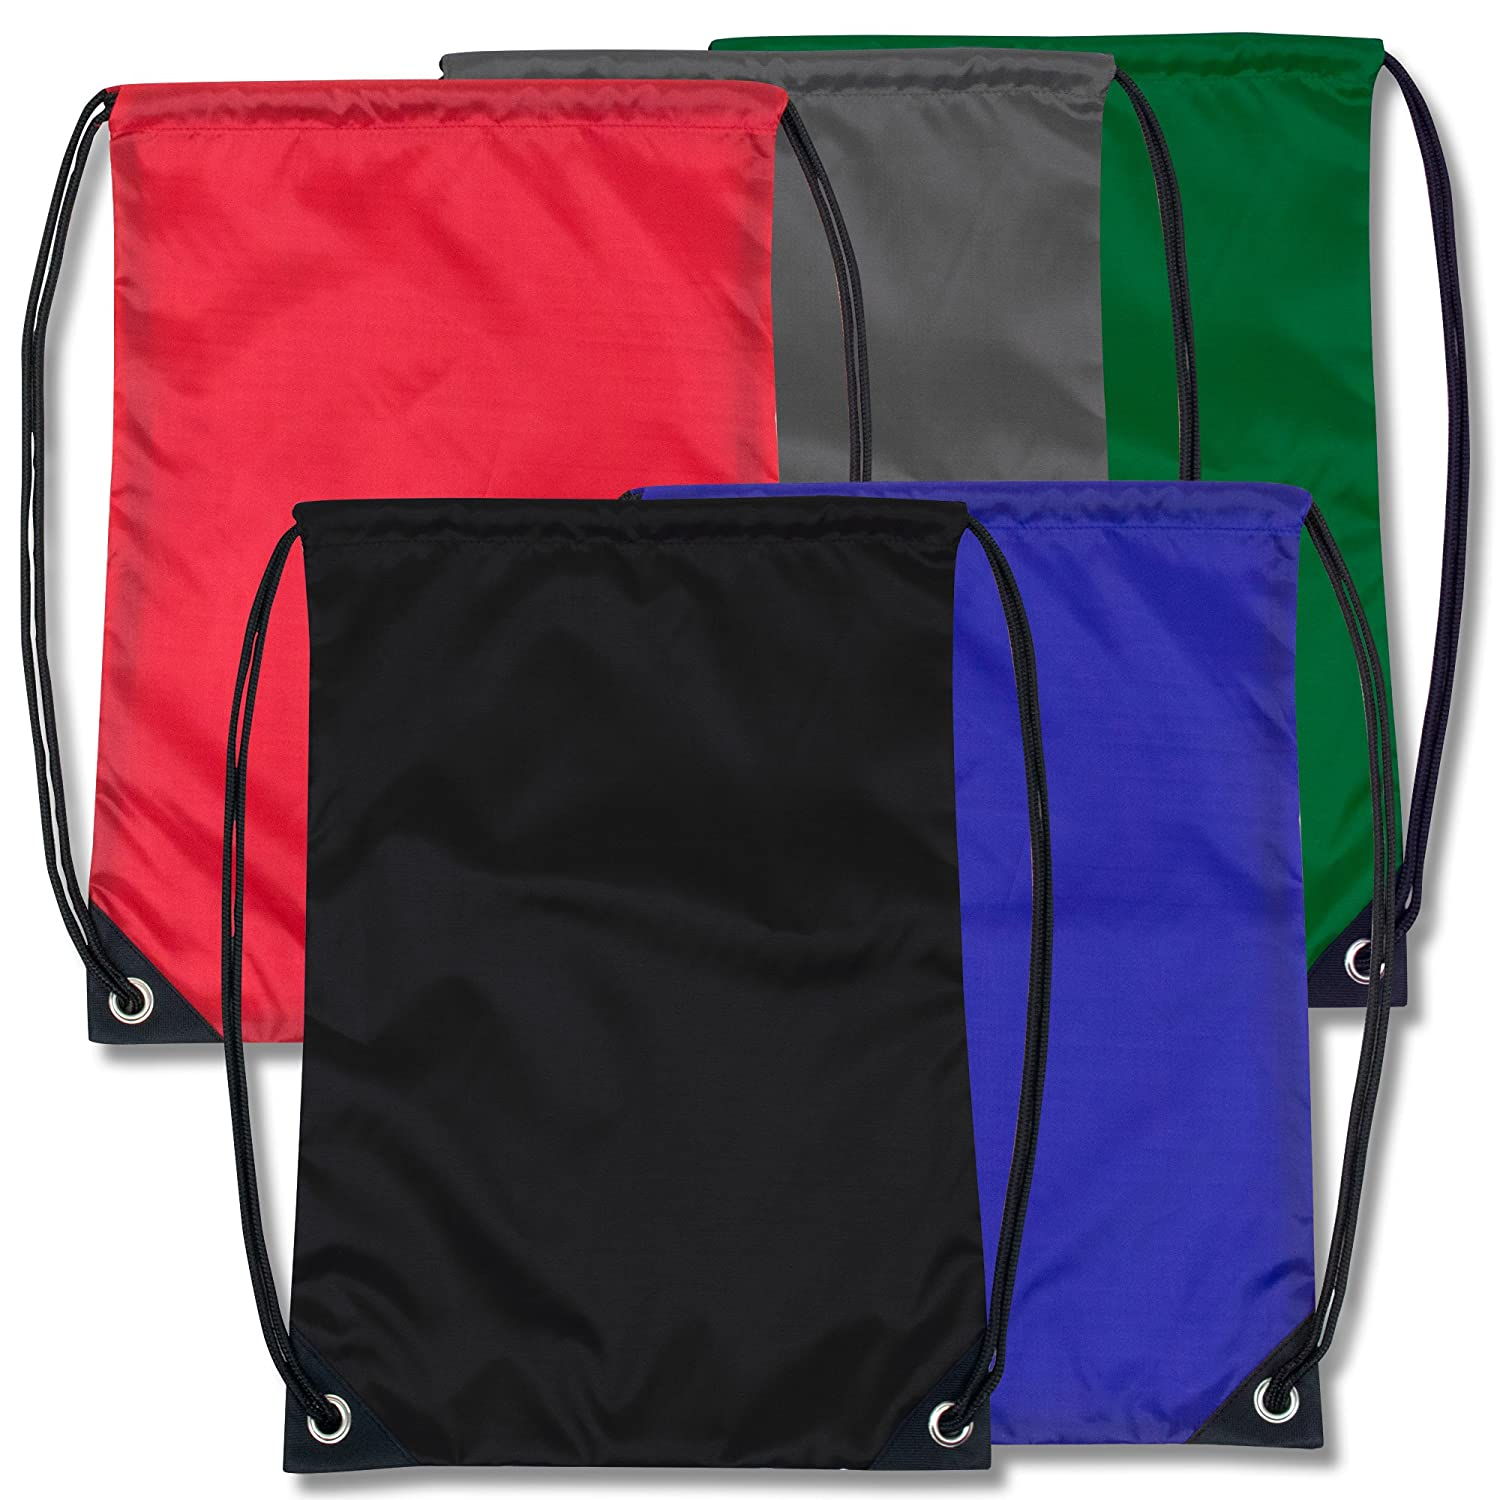 Drawstring Cinch Sack Bag Backpack Bulk Wholesale Case Pack Of 48